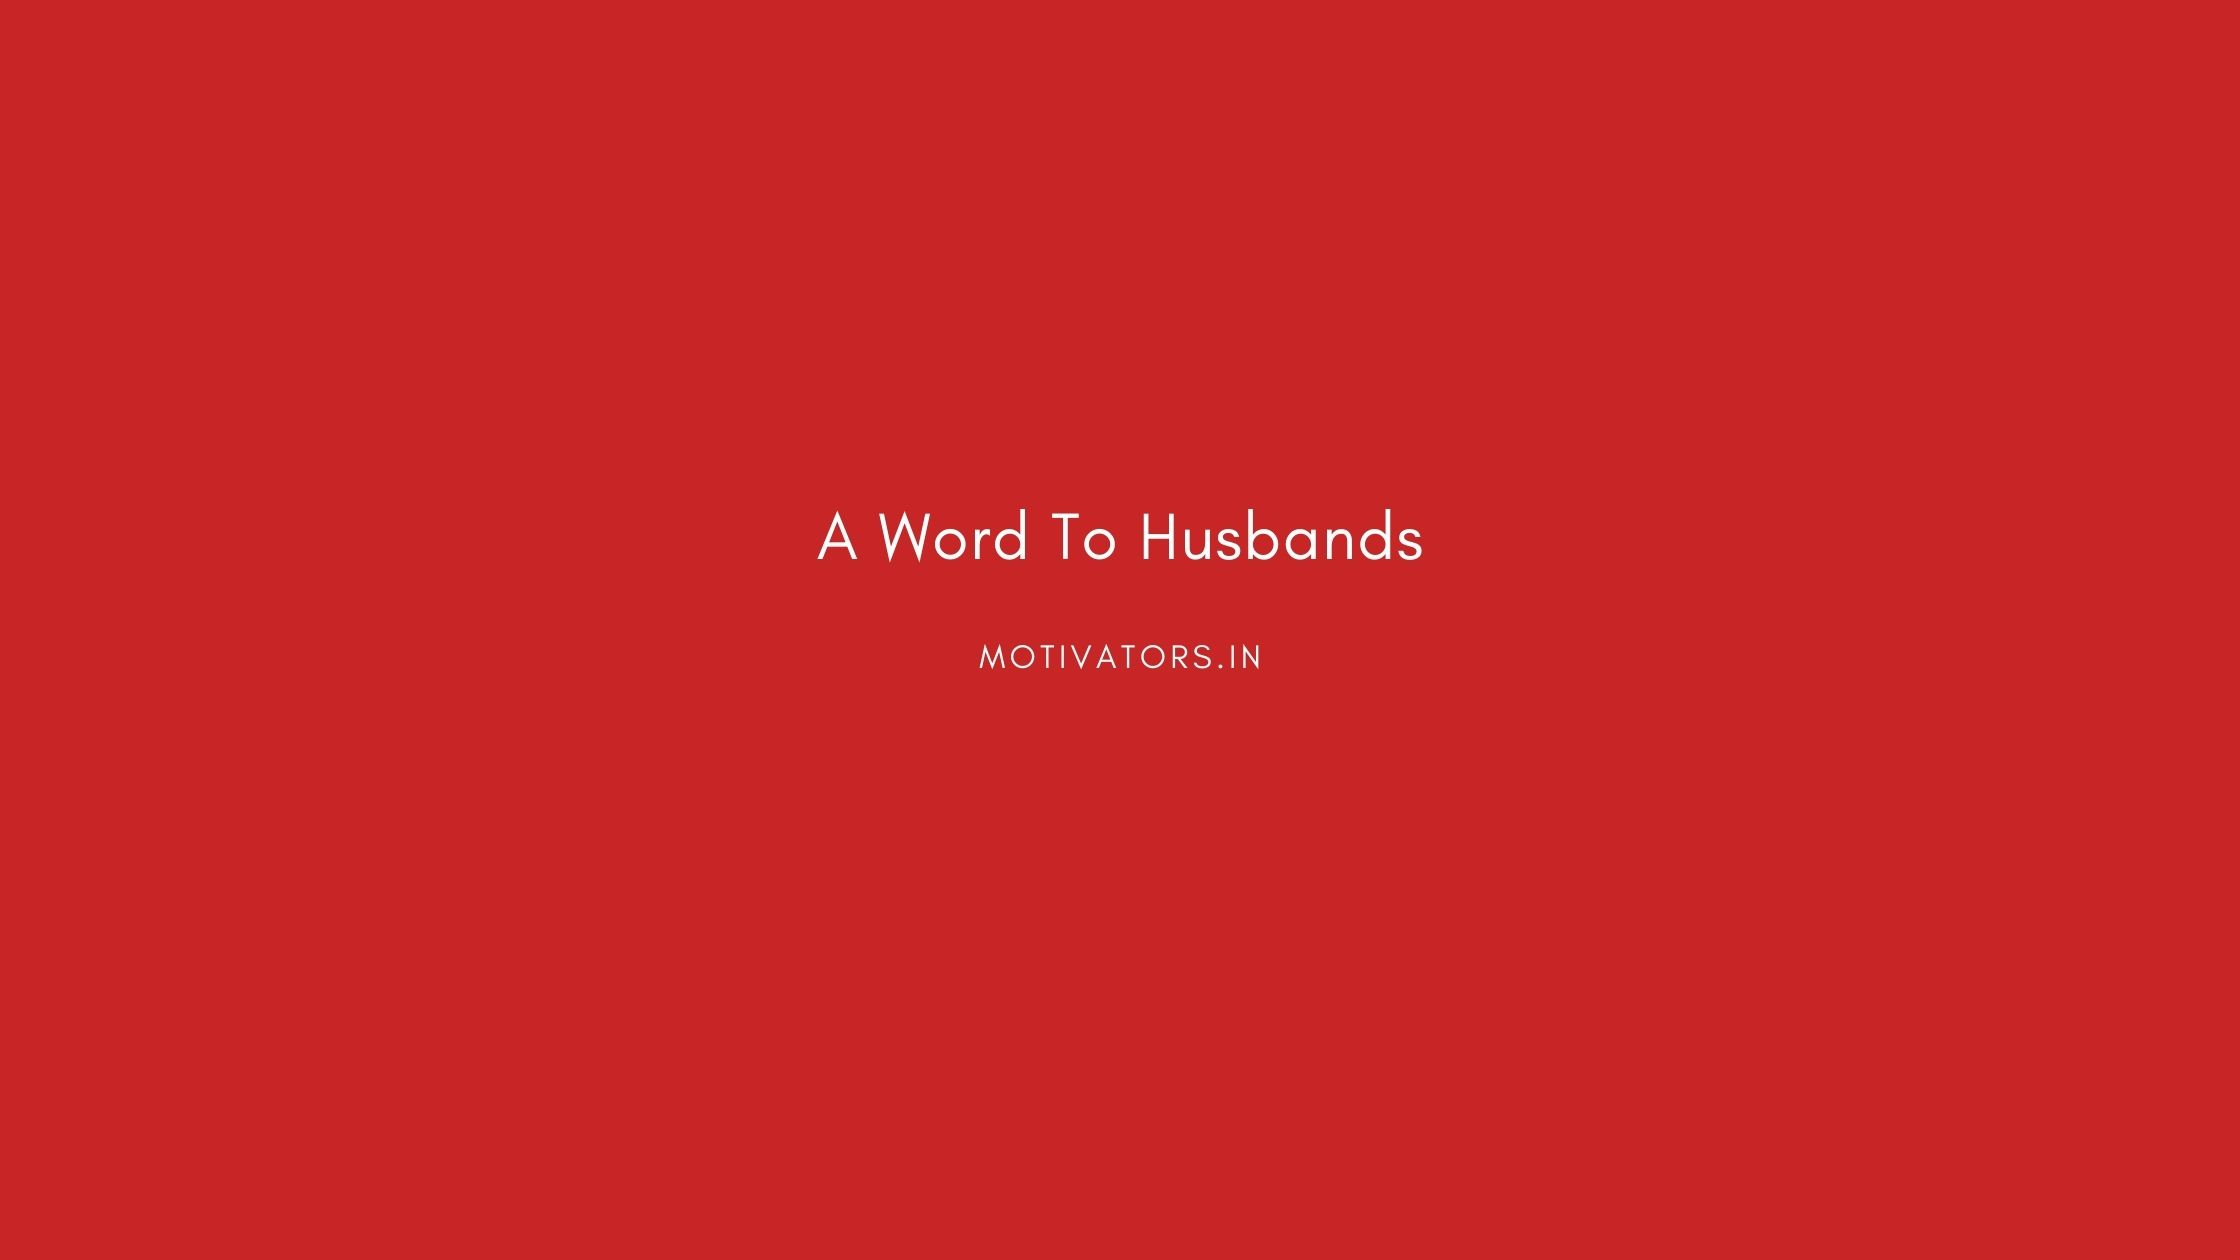 A Word To Husbands